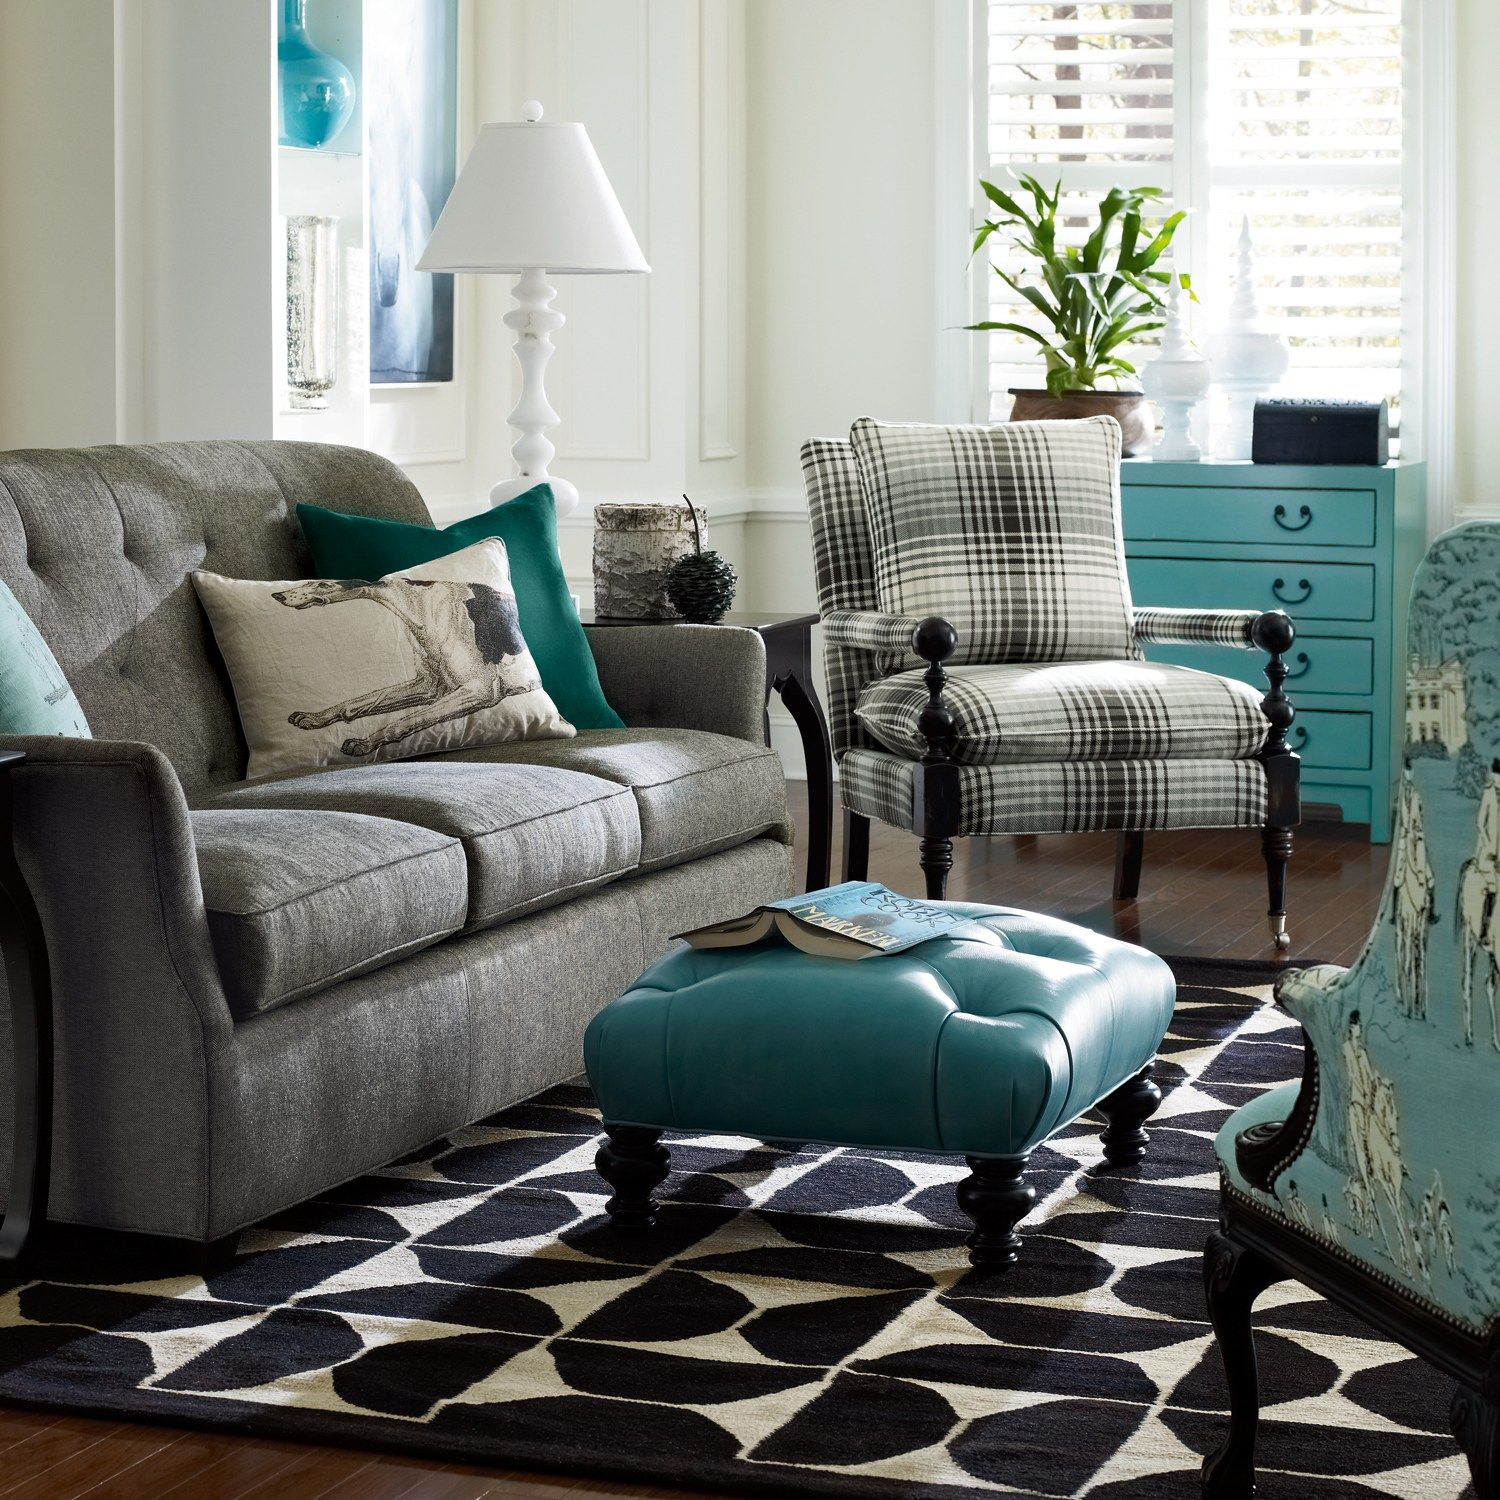 Teal Accents Living Room This Is Totally The Look I Want In My Family Room Got